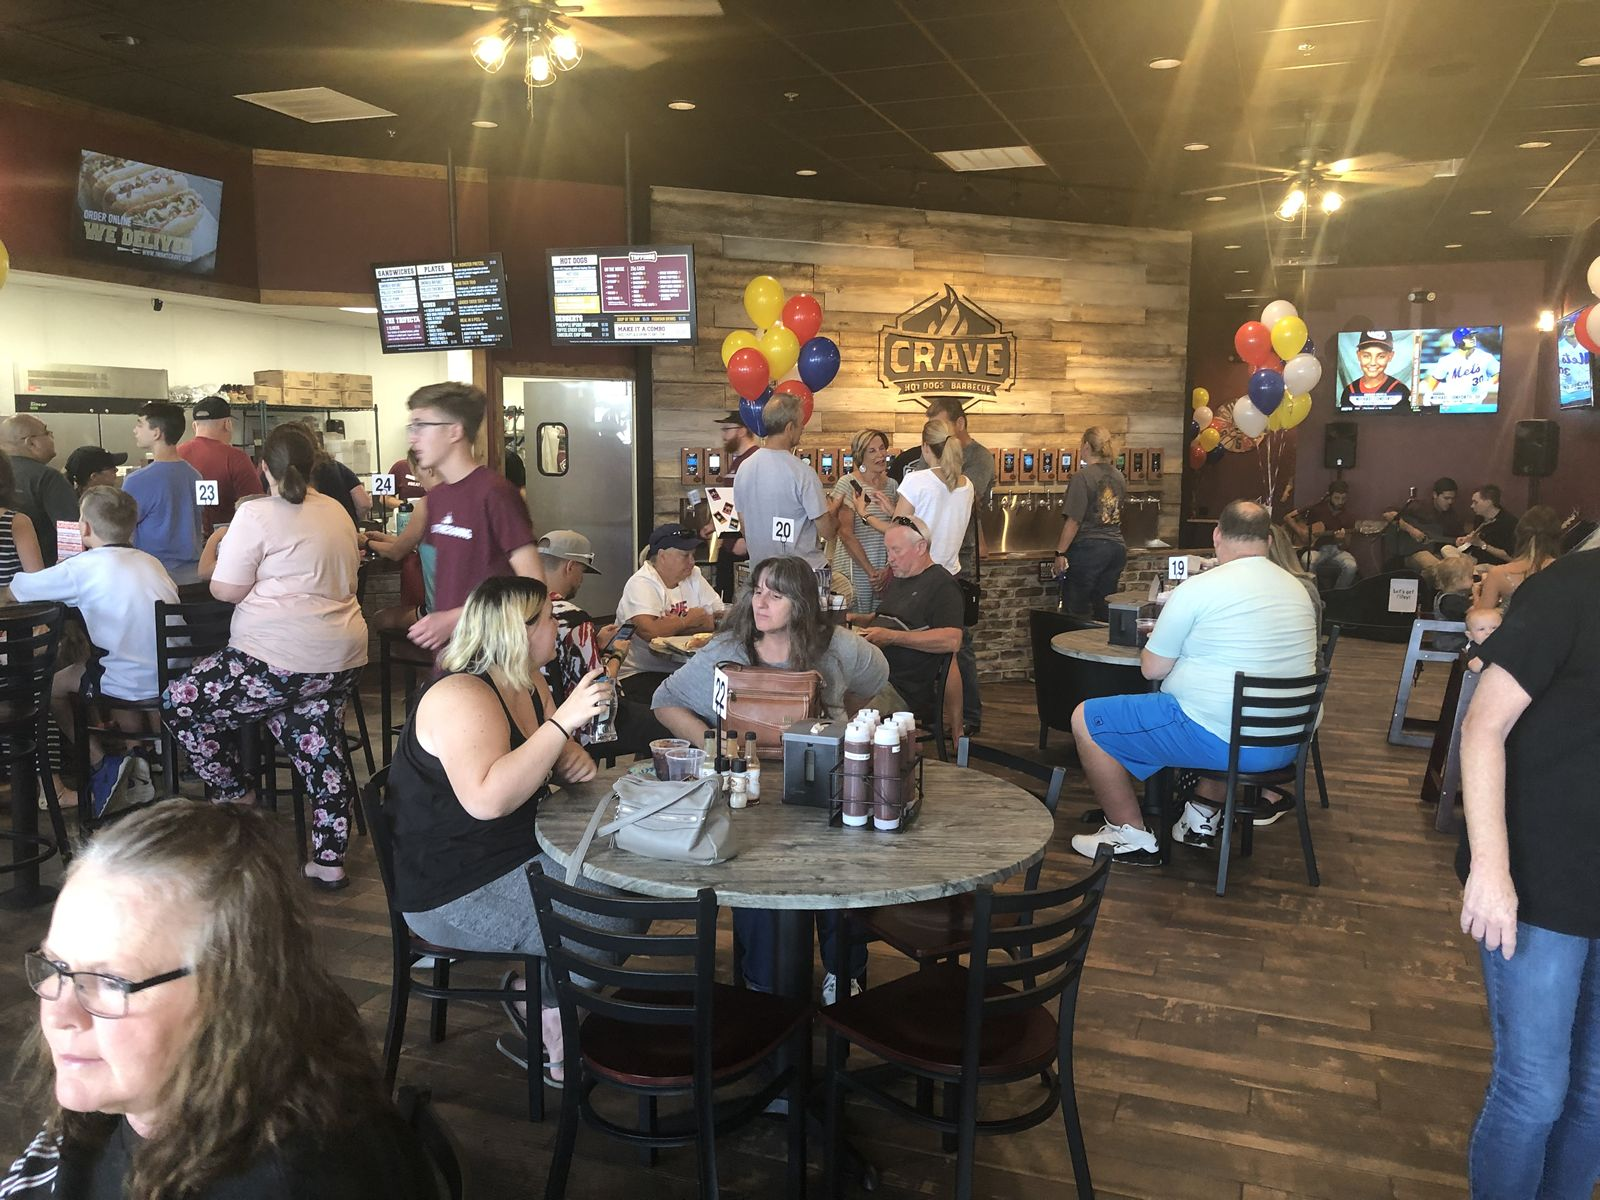 Crave Hot Dogs and BBQ Celebrates Grand Opening in Yukon, Oklahoma